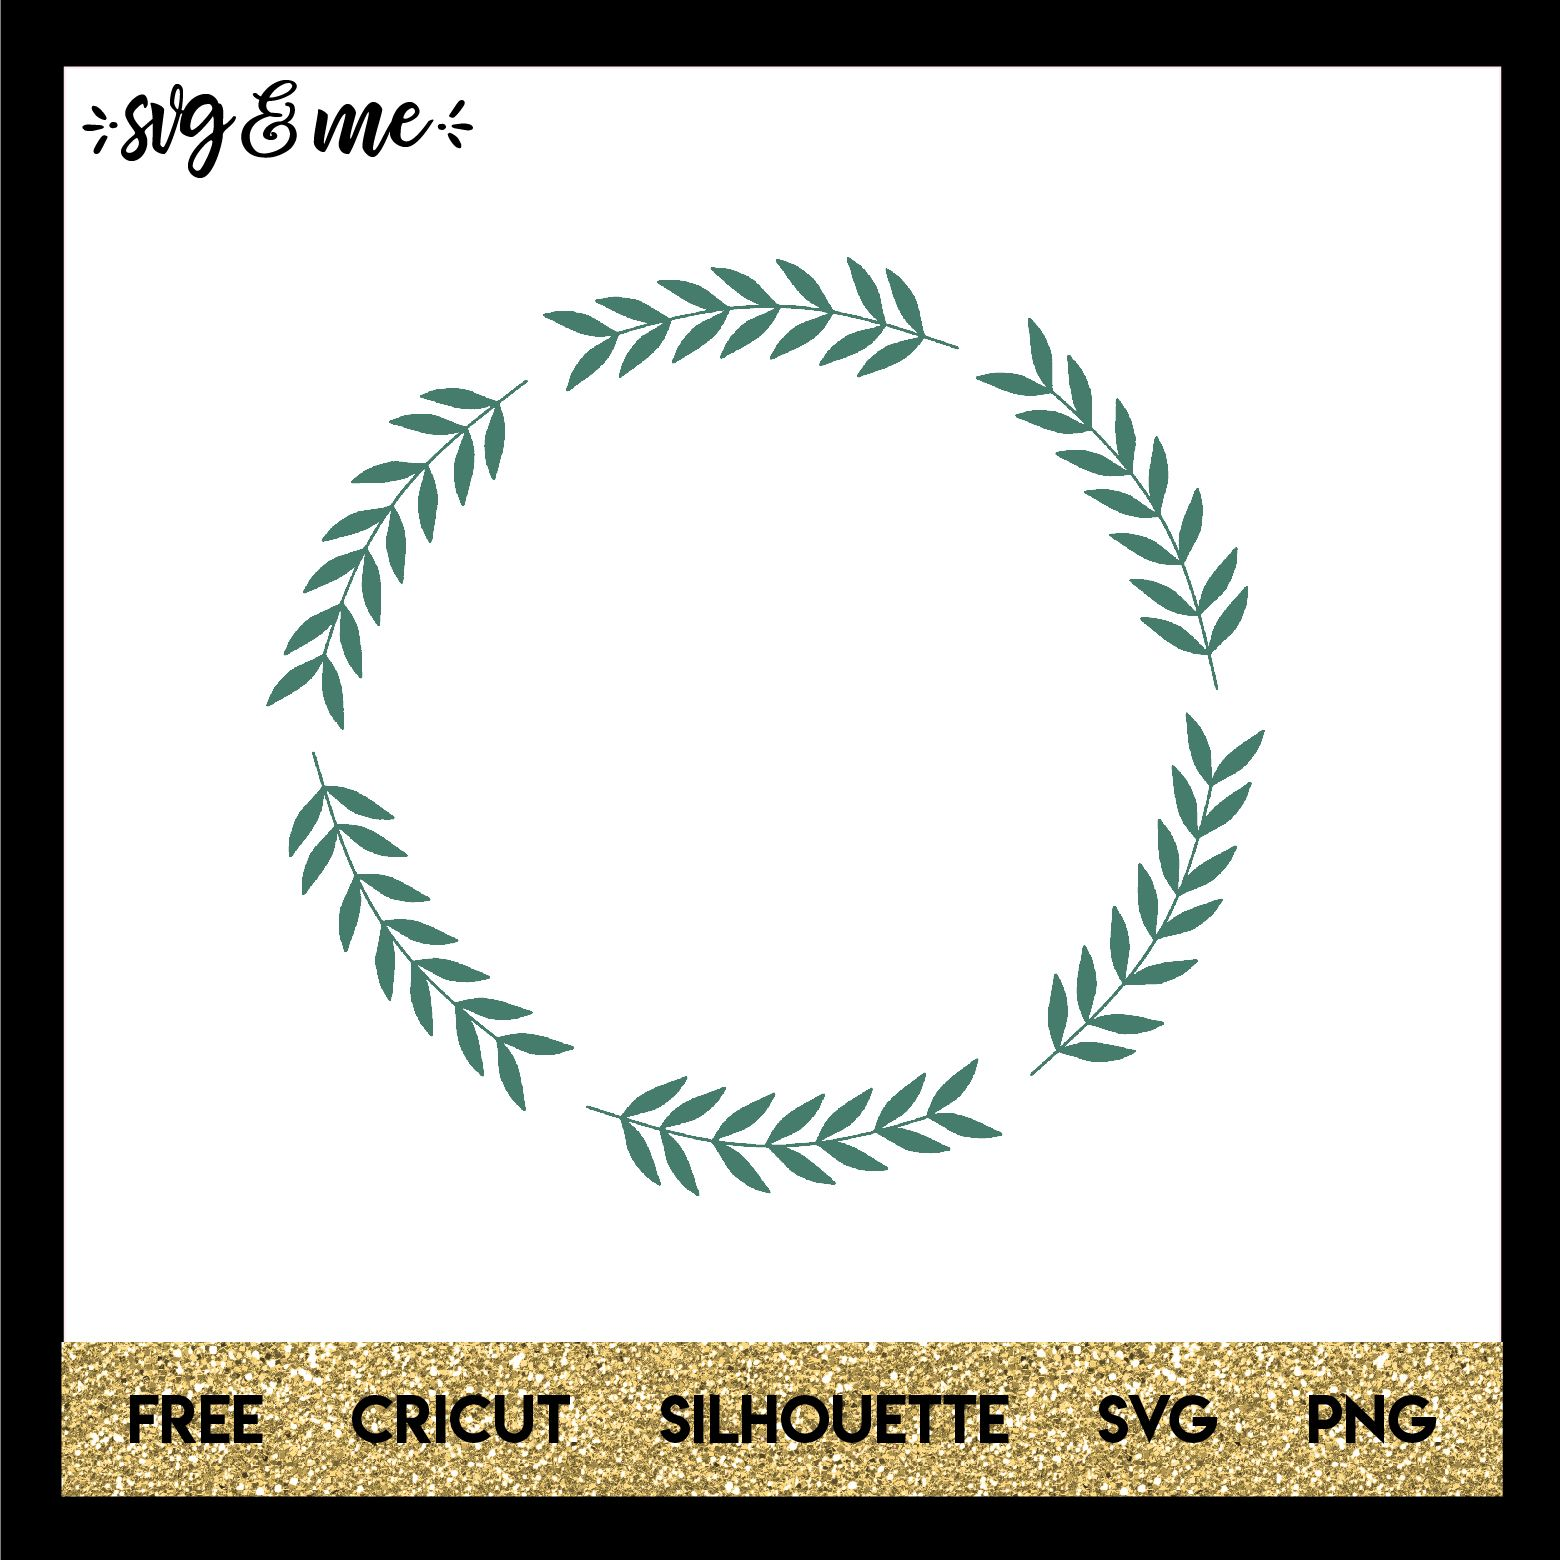 This free svg laurel wreath is a musthave for your cricut library